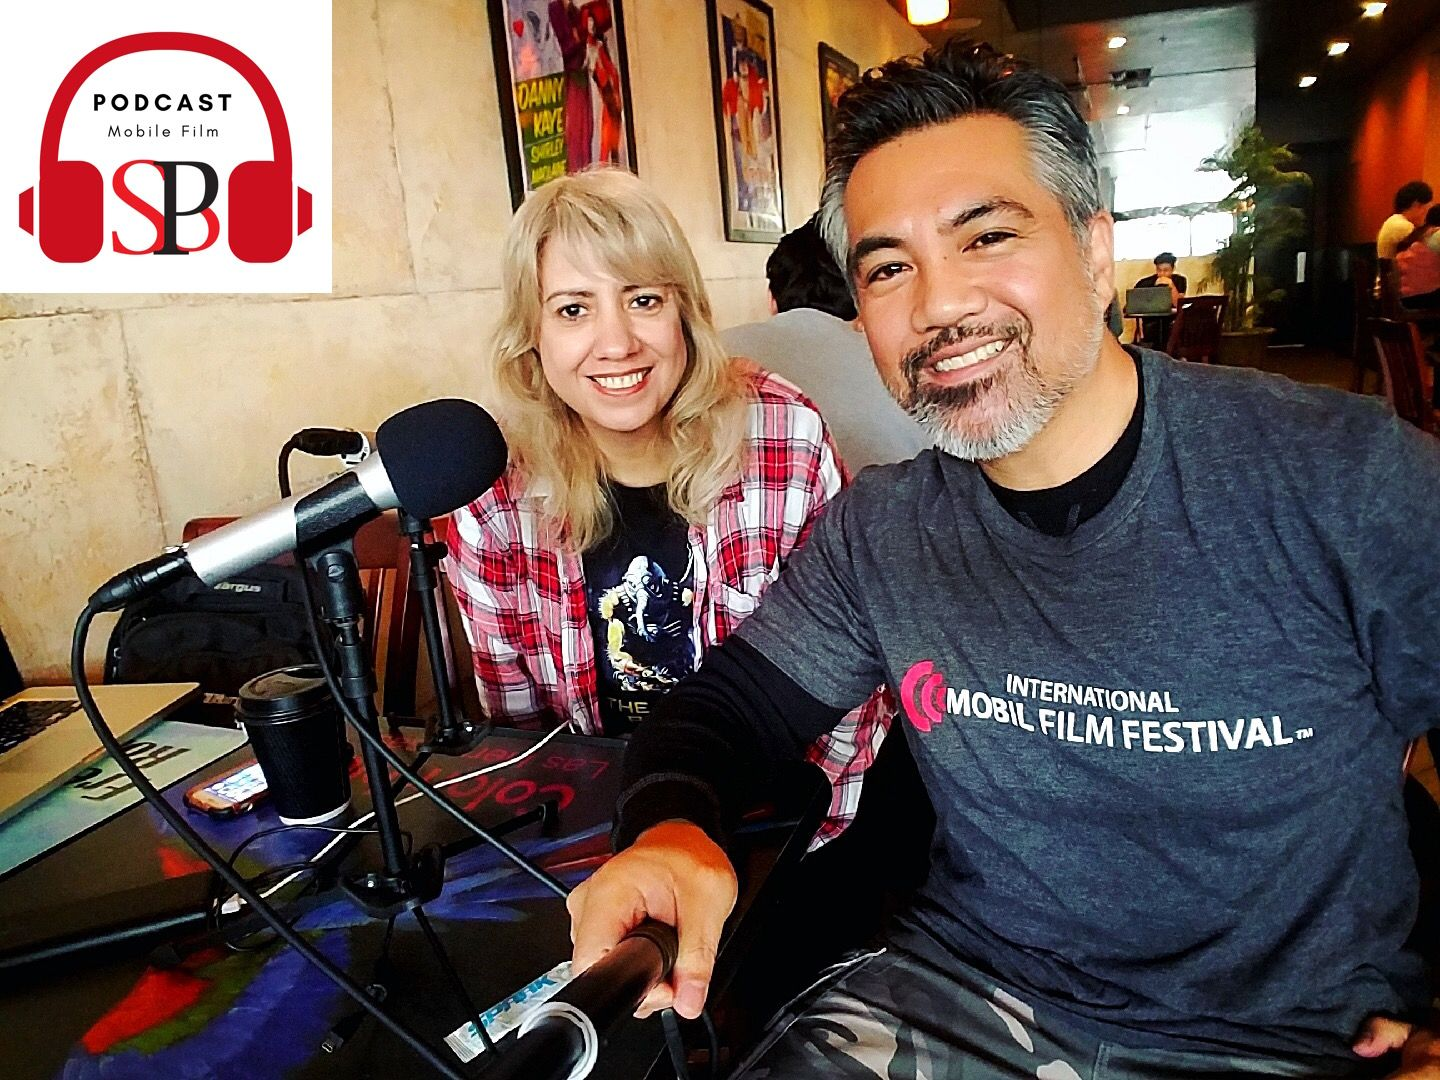 SBP Podcast host Susy Botello with guest Aaron Nabus in San Diego.